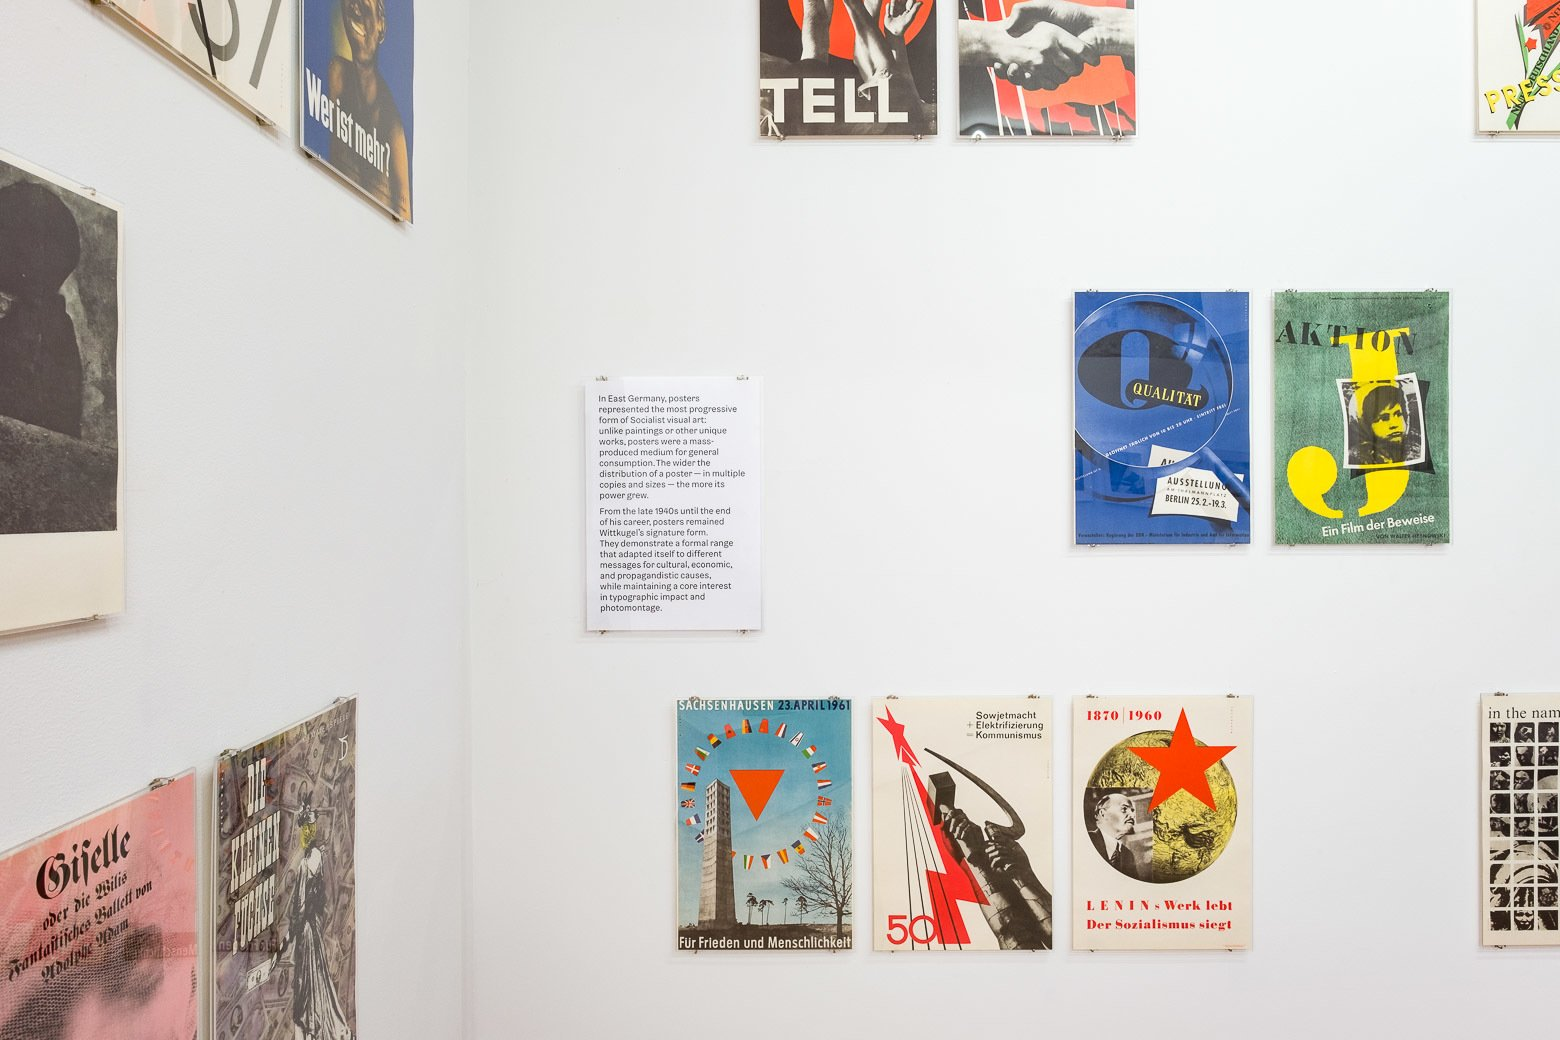 """Krishnamurthy on Wittkugel's poster designs: """"The exhibition includes a tight selection of posters from the 1950s through 1970s, only a small portion of what Klaus Wittkugel designed over his long career. Wittkugel's exhibition designs for his retrospectives in the 1960s and 1970s were often jam-packed with work: walls full of posters, boards featuring exhibition designs, logos, and more. He even went so far as to include a full-scale reproduction of one of his exhibition displays in a later retrospective. I've taken a more sparing approach to installation, but also refer to his strategies through specific conceptual elements: For example, by presenting my curatorial wall text about posters in exactly the same manner as the other posters.""""  Photo 2 of 6 in A Look at Klaus Wittkugel, East Germany's Most Prolific Graphic Designer"""